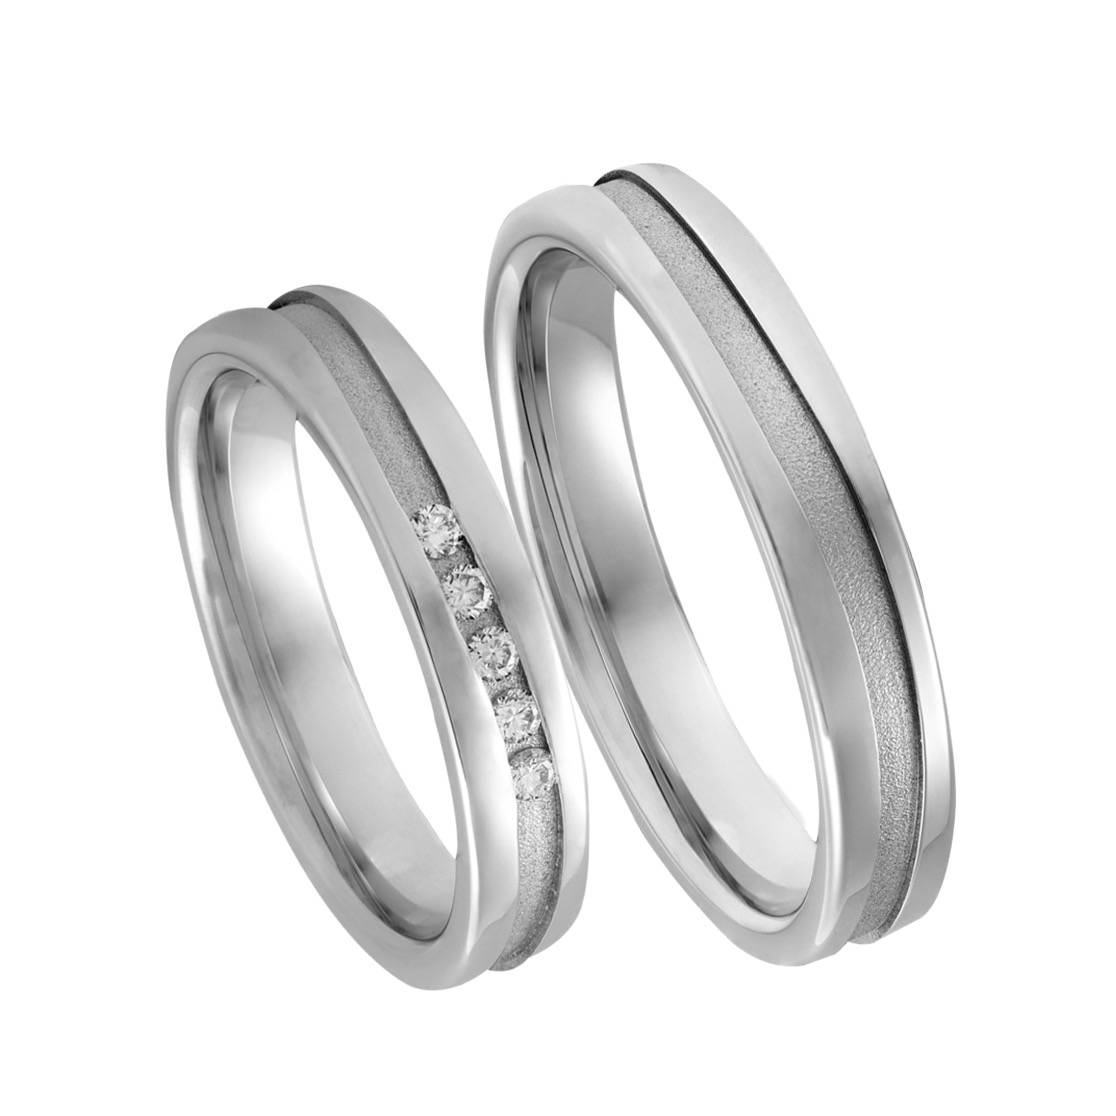 Juwelier Jan Maes - Trouwringen - Verlovingsringen - Juwelen - House of Weddings - 7